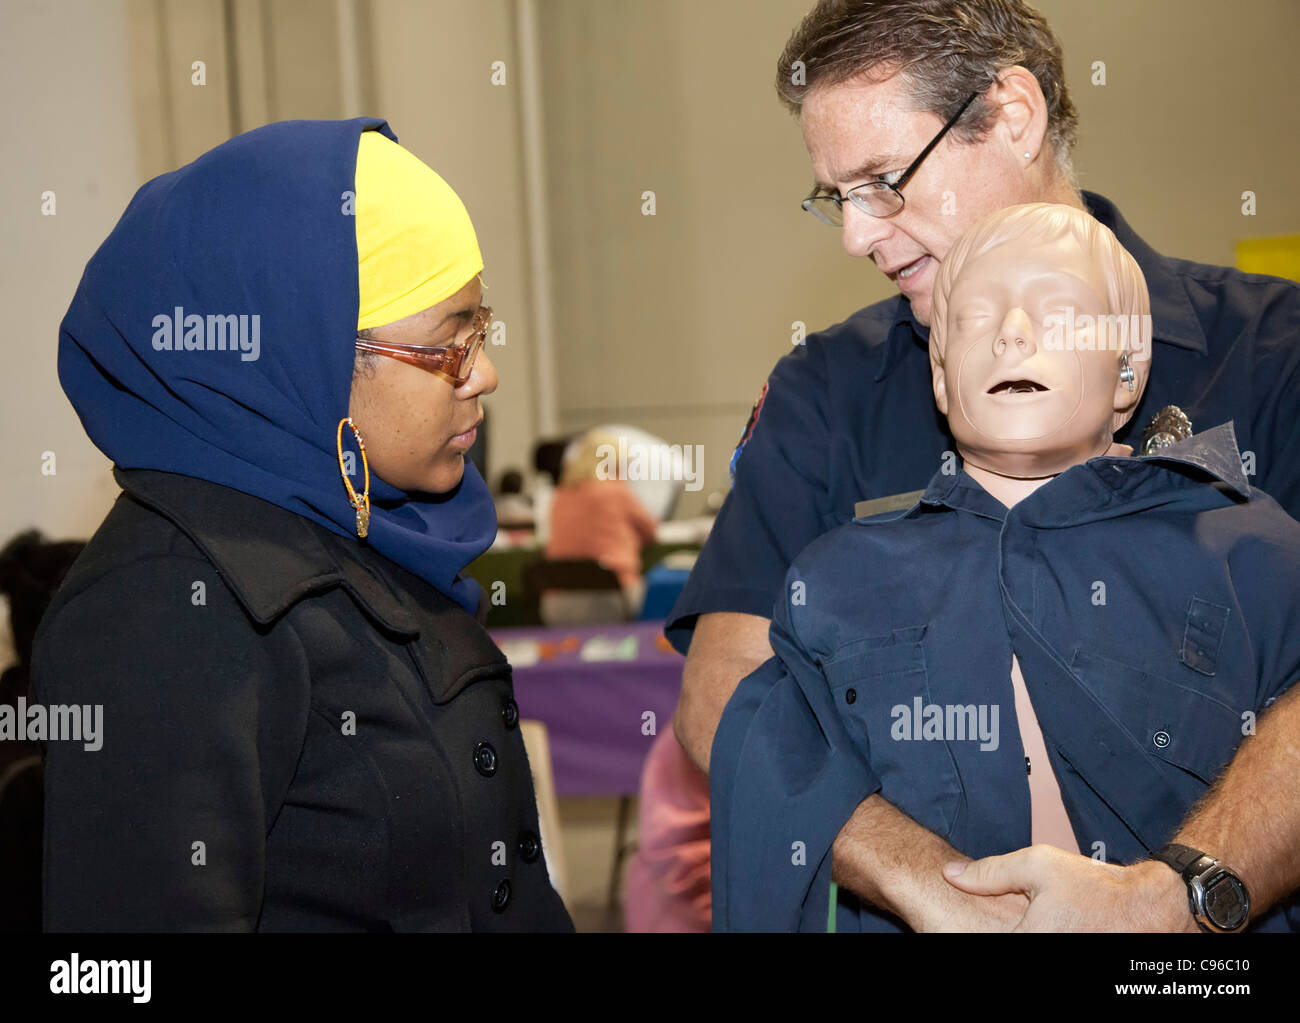 Detroit, Michigan - An emergency medical technician teaches the Heimlich maneuver to a person attending a community - Stock Image